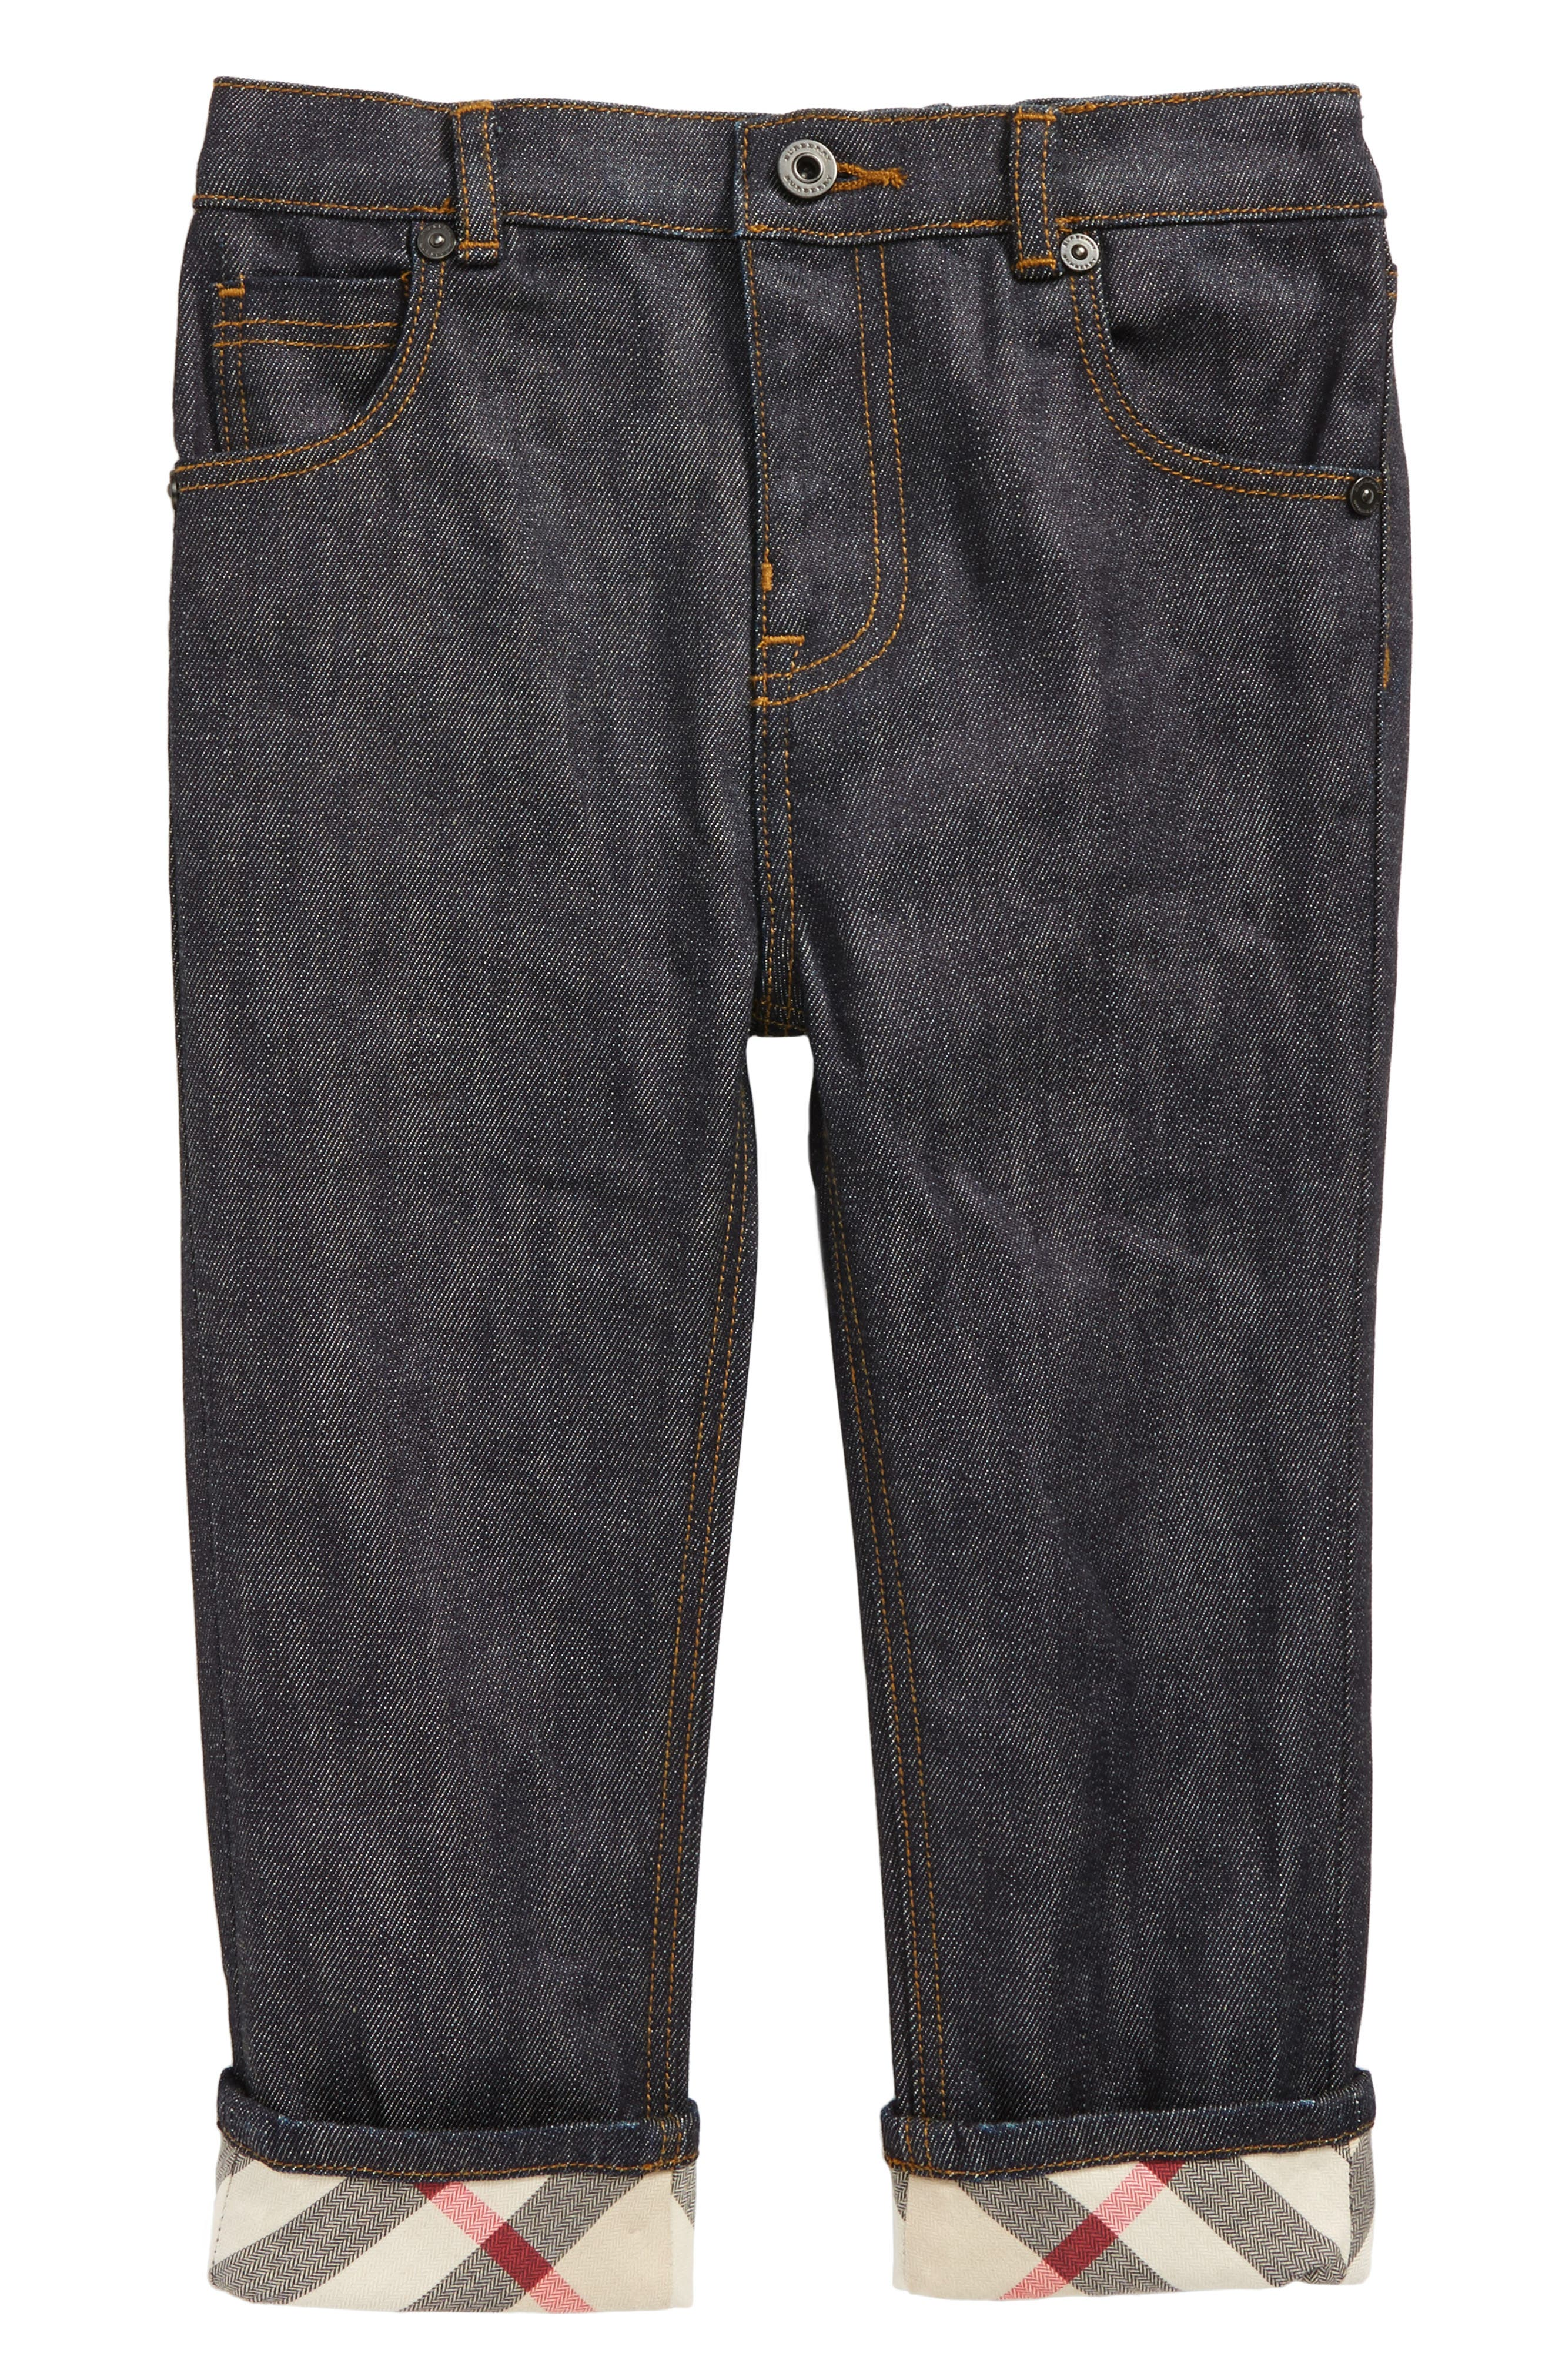 Alternate Image 1 Selected - Burberry Check Cuff Relaxed Jeans (Toddler Boys)